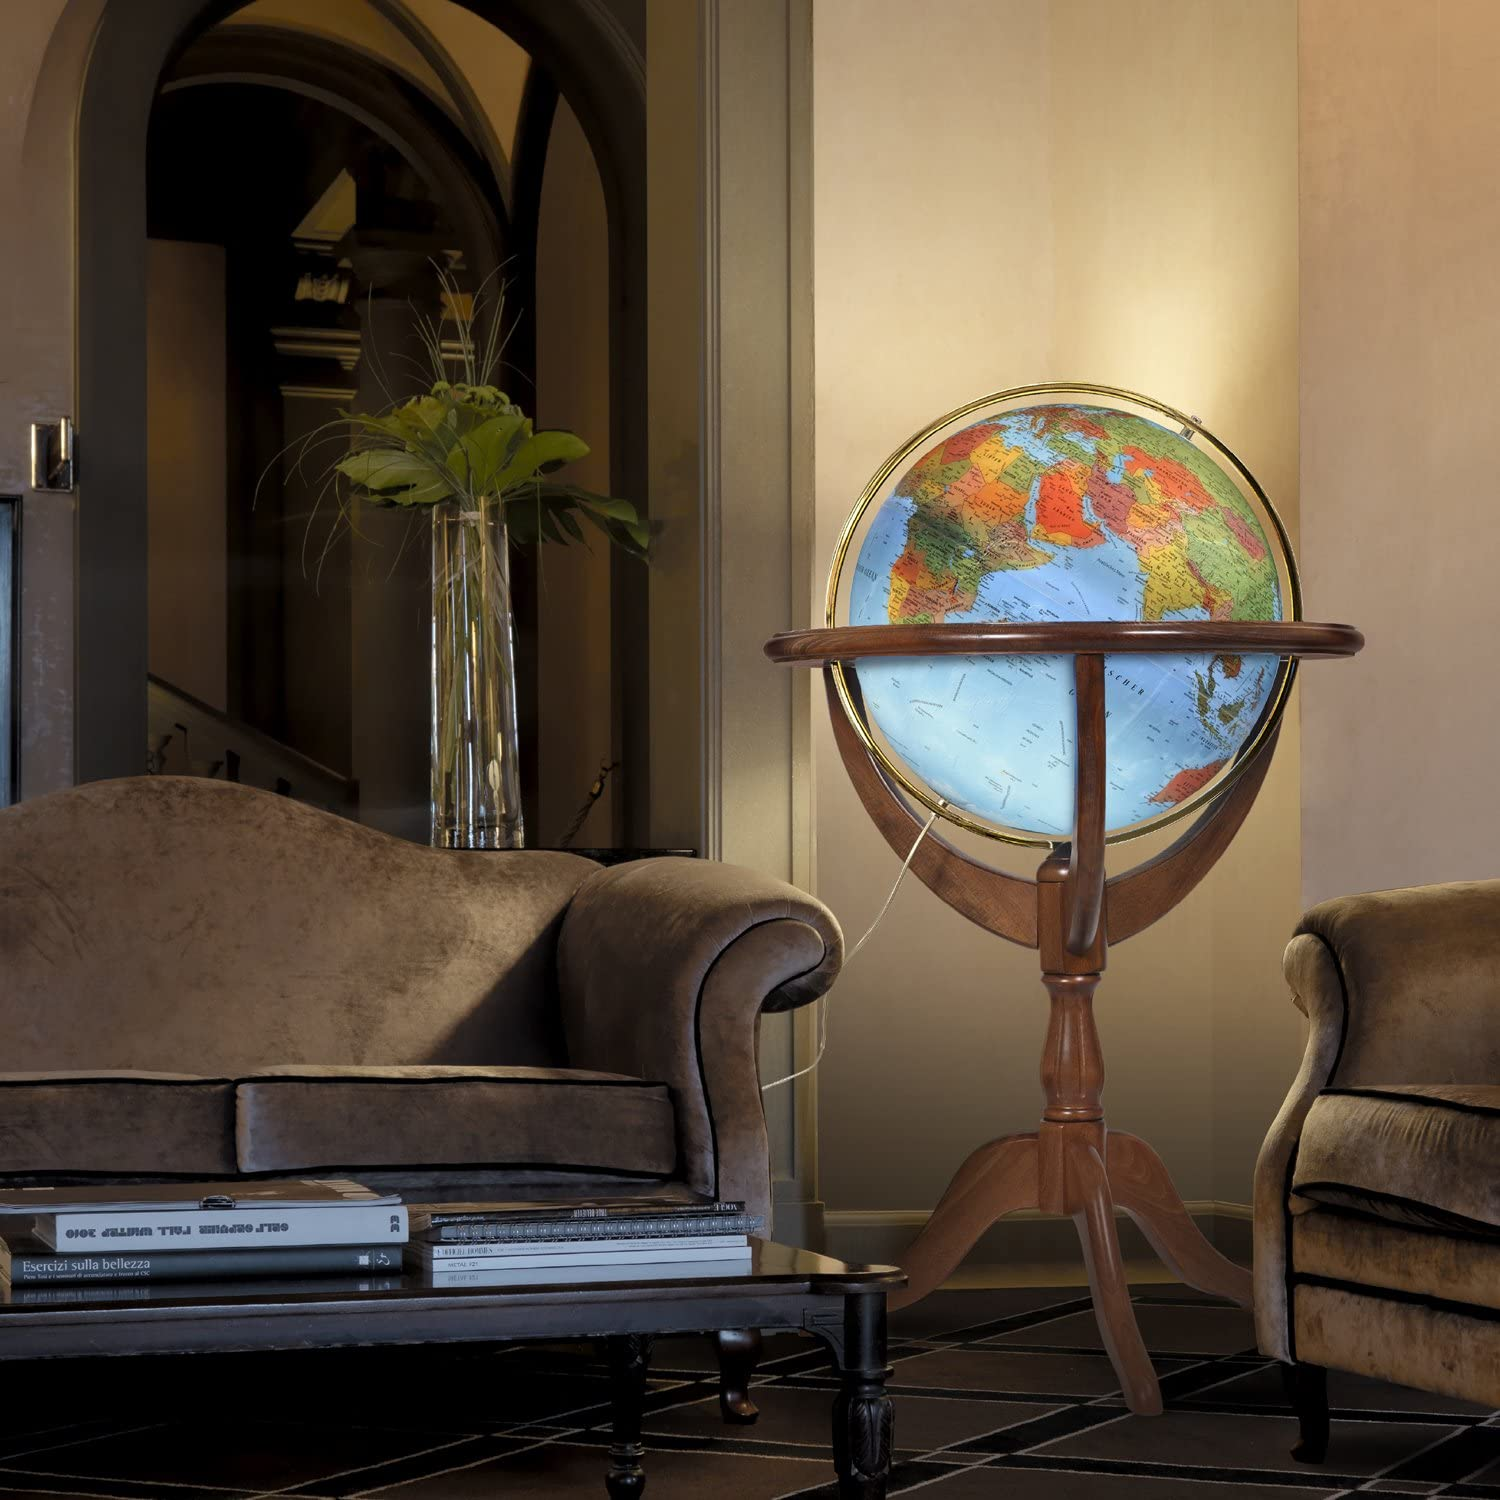 Waypoint Geographic Geneva 20 inch Diameter Political Landmass /& Classic Antique Oceans Illuminated UP-TO-DATE Floor Standing Globe Metal Meridian-Duncan Phyfe Style 3-Leg Wood Stand Classic Antique